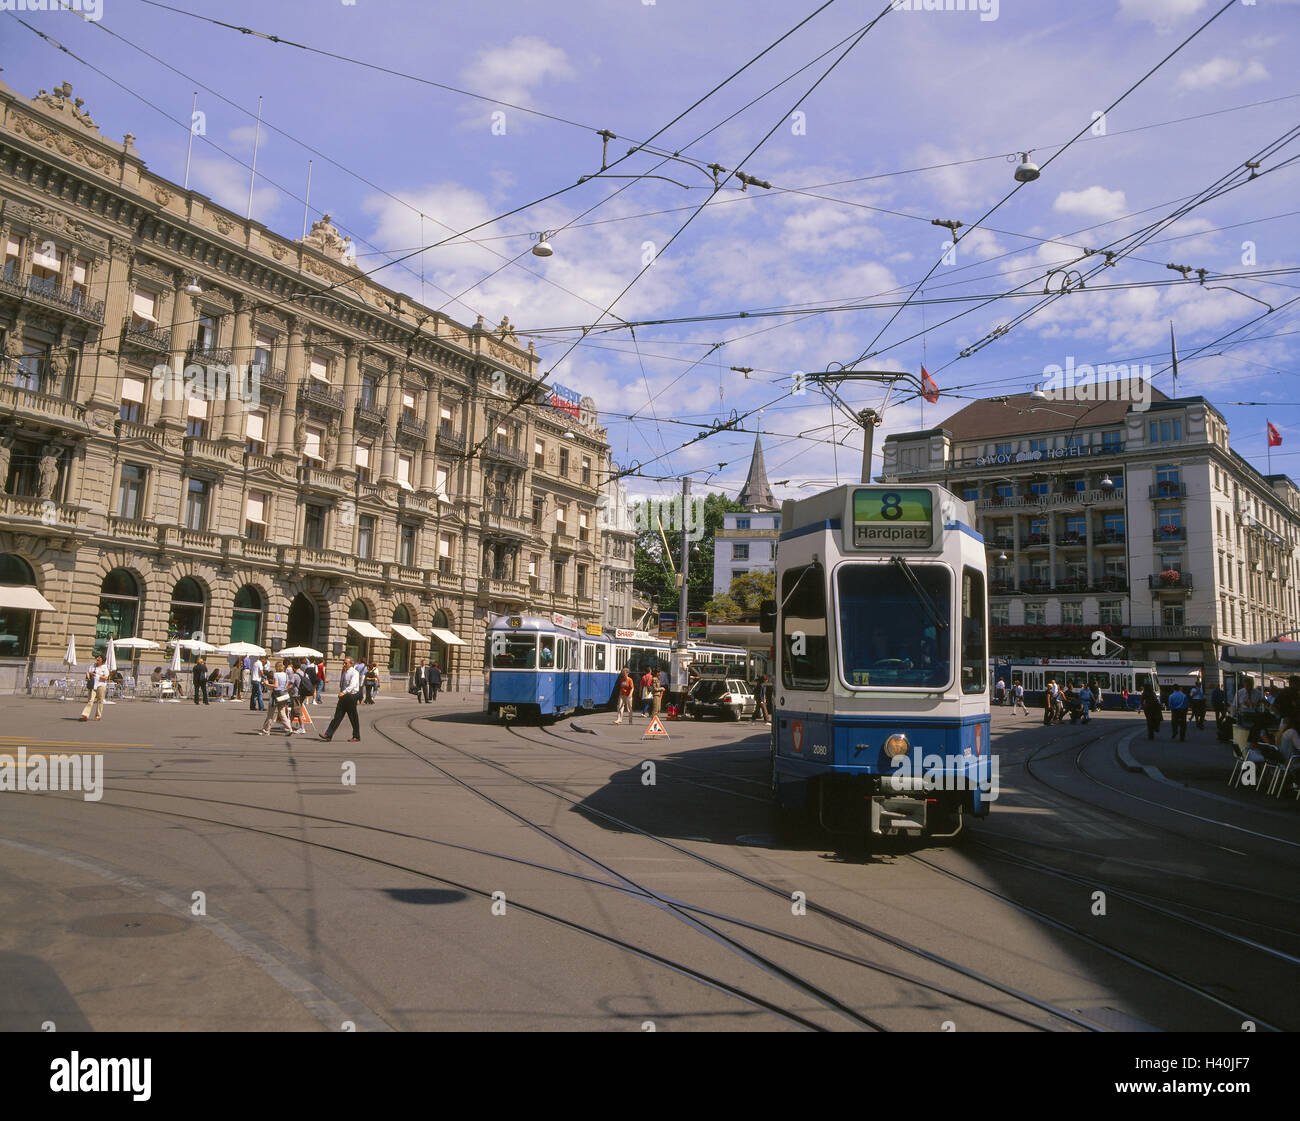 Switzerland, Zurich, save space, streetcars, passers-by, Europe, Svizzra, canton, town, city centre, part town, - Stock Image